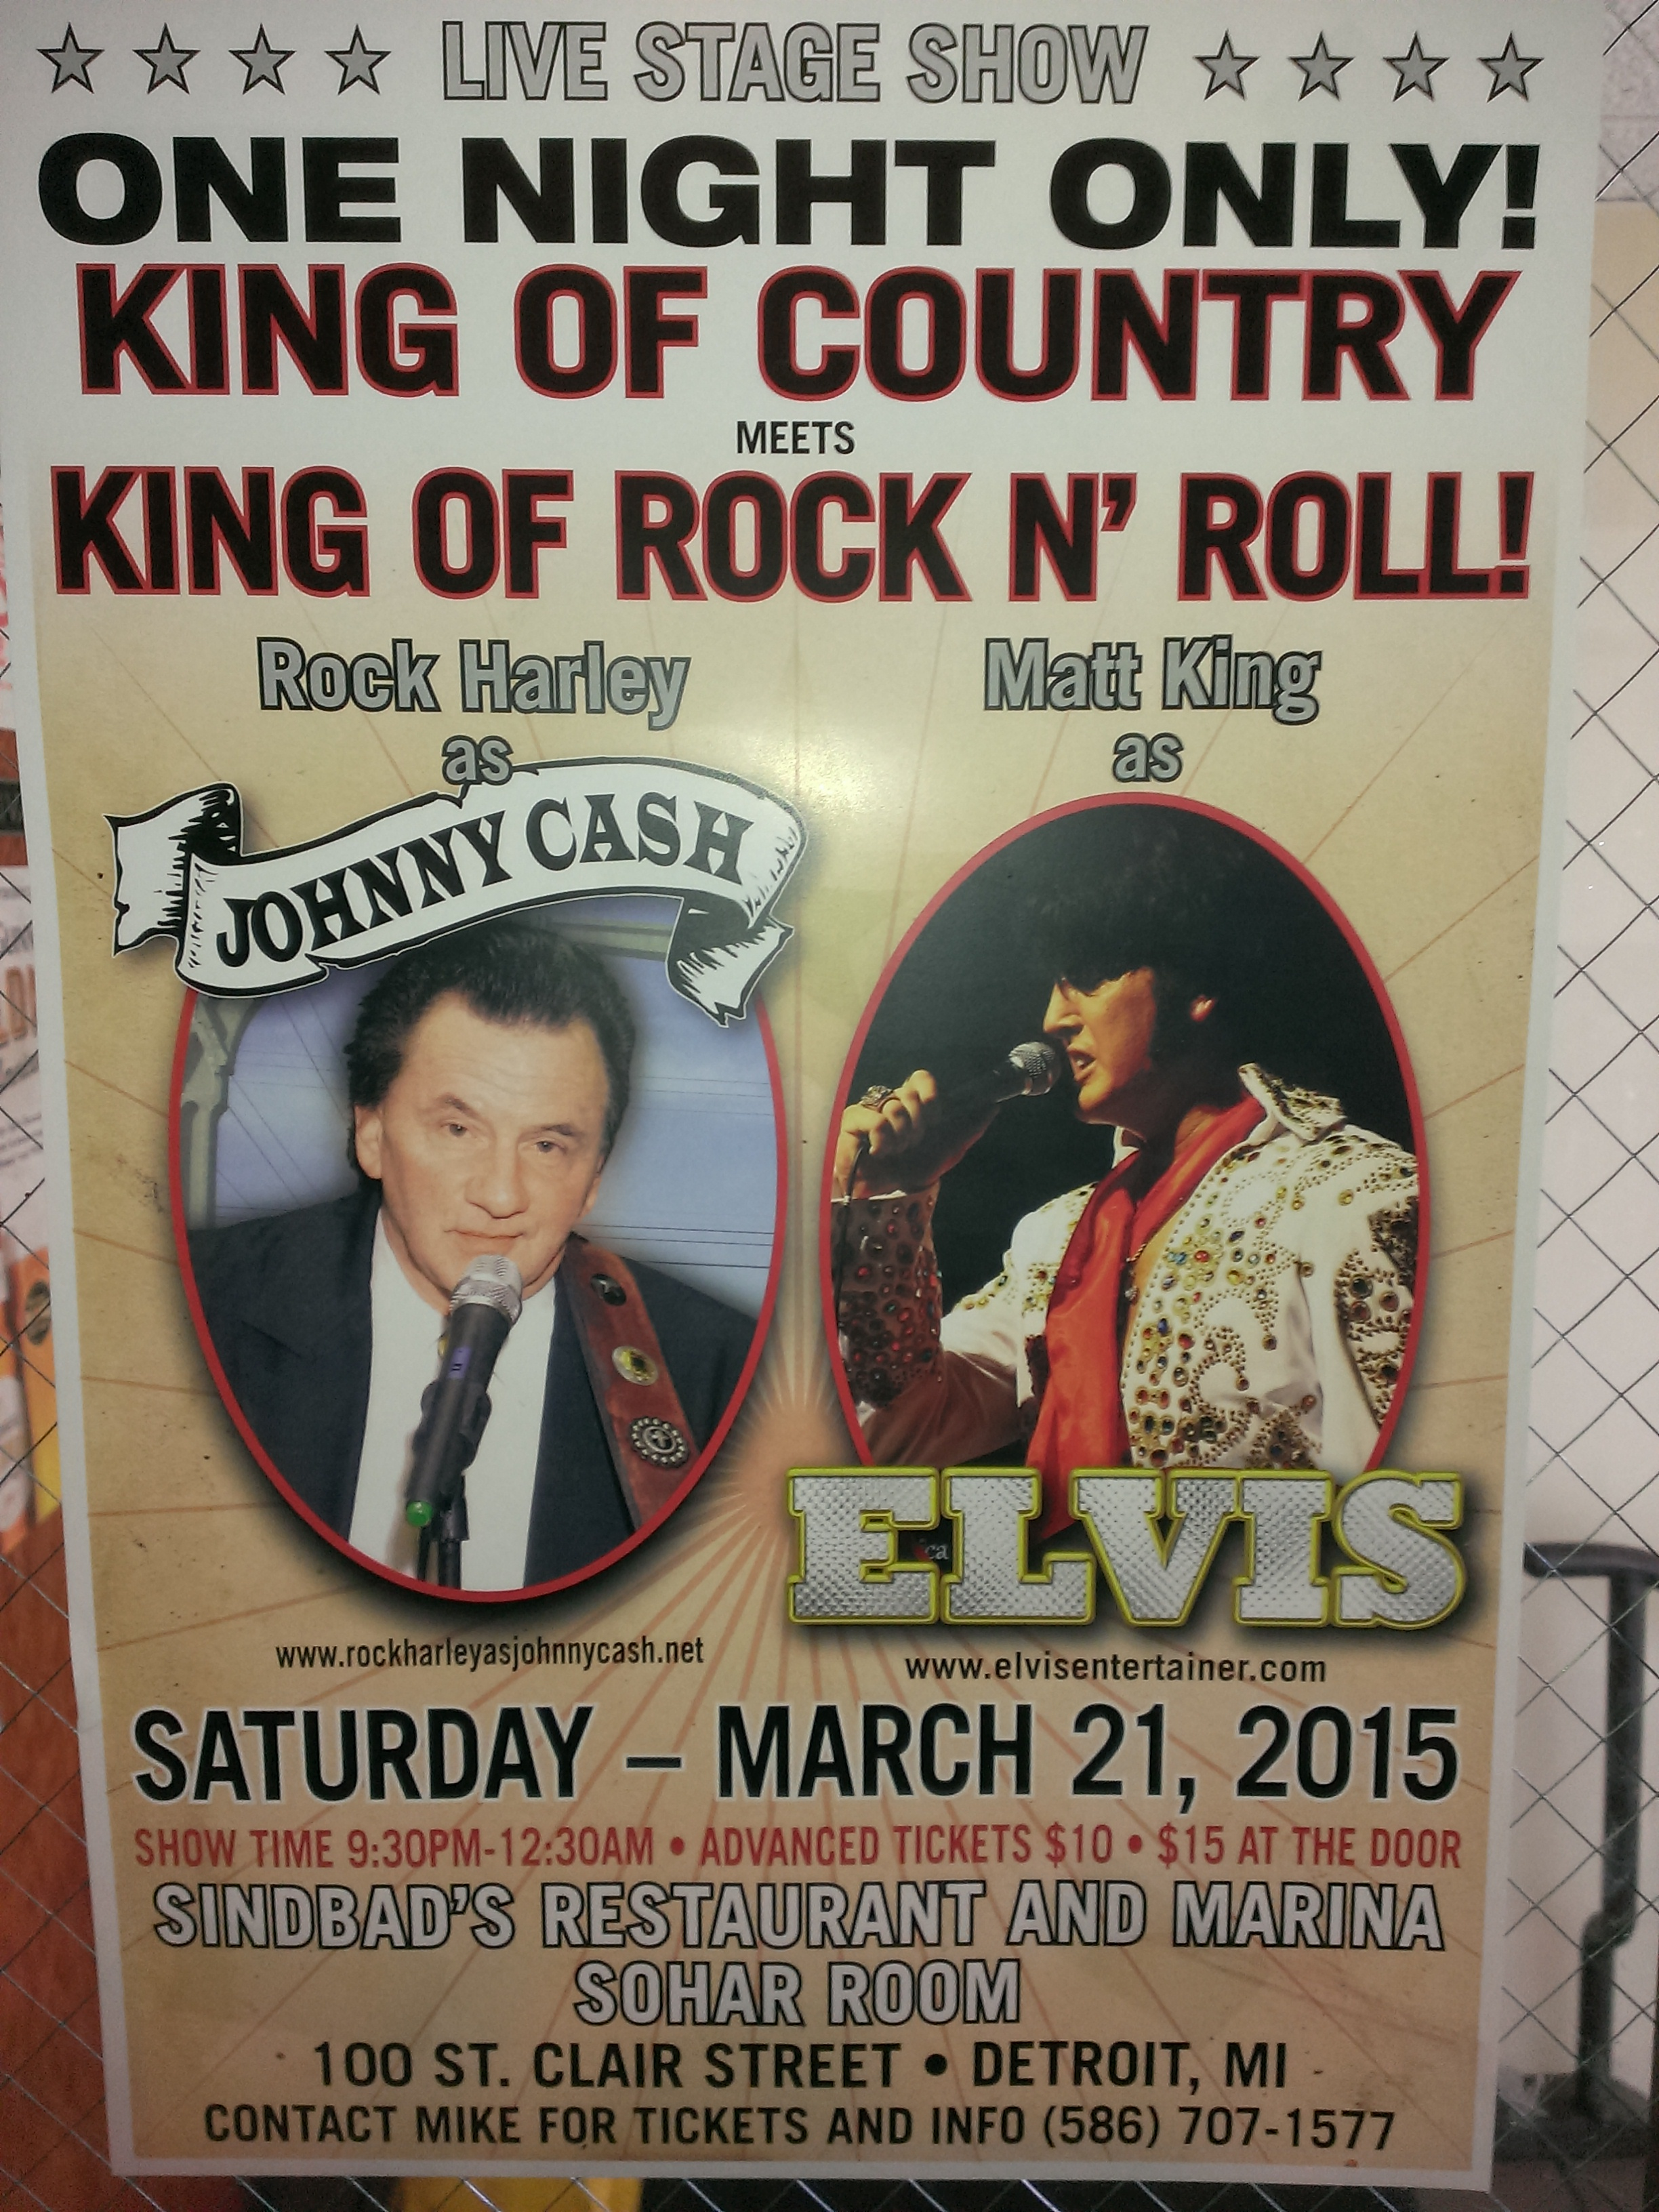 King of Country meets King of Rock & Roll !